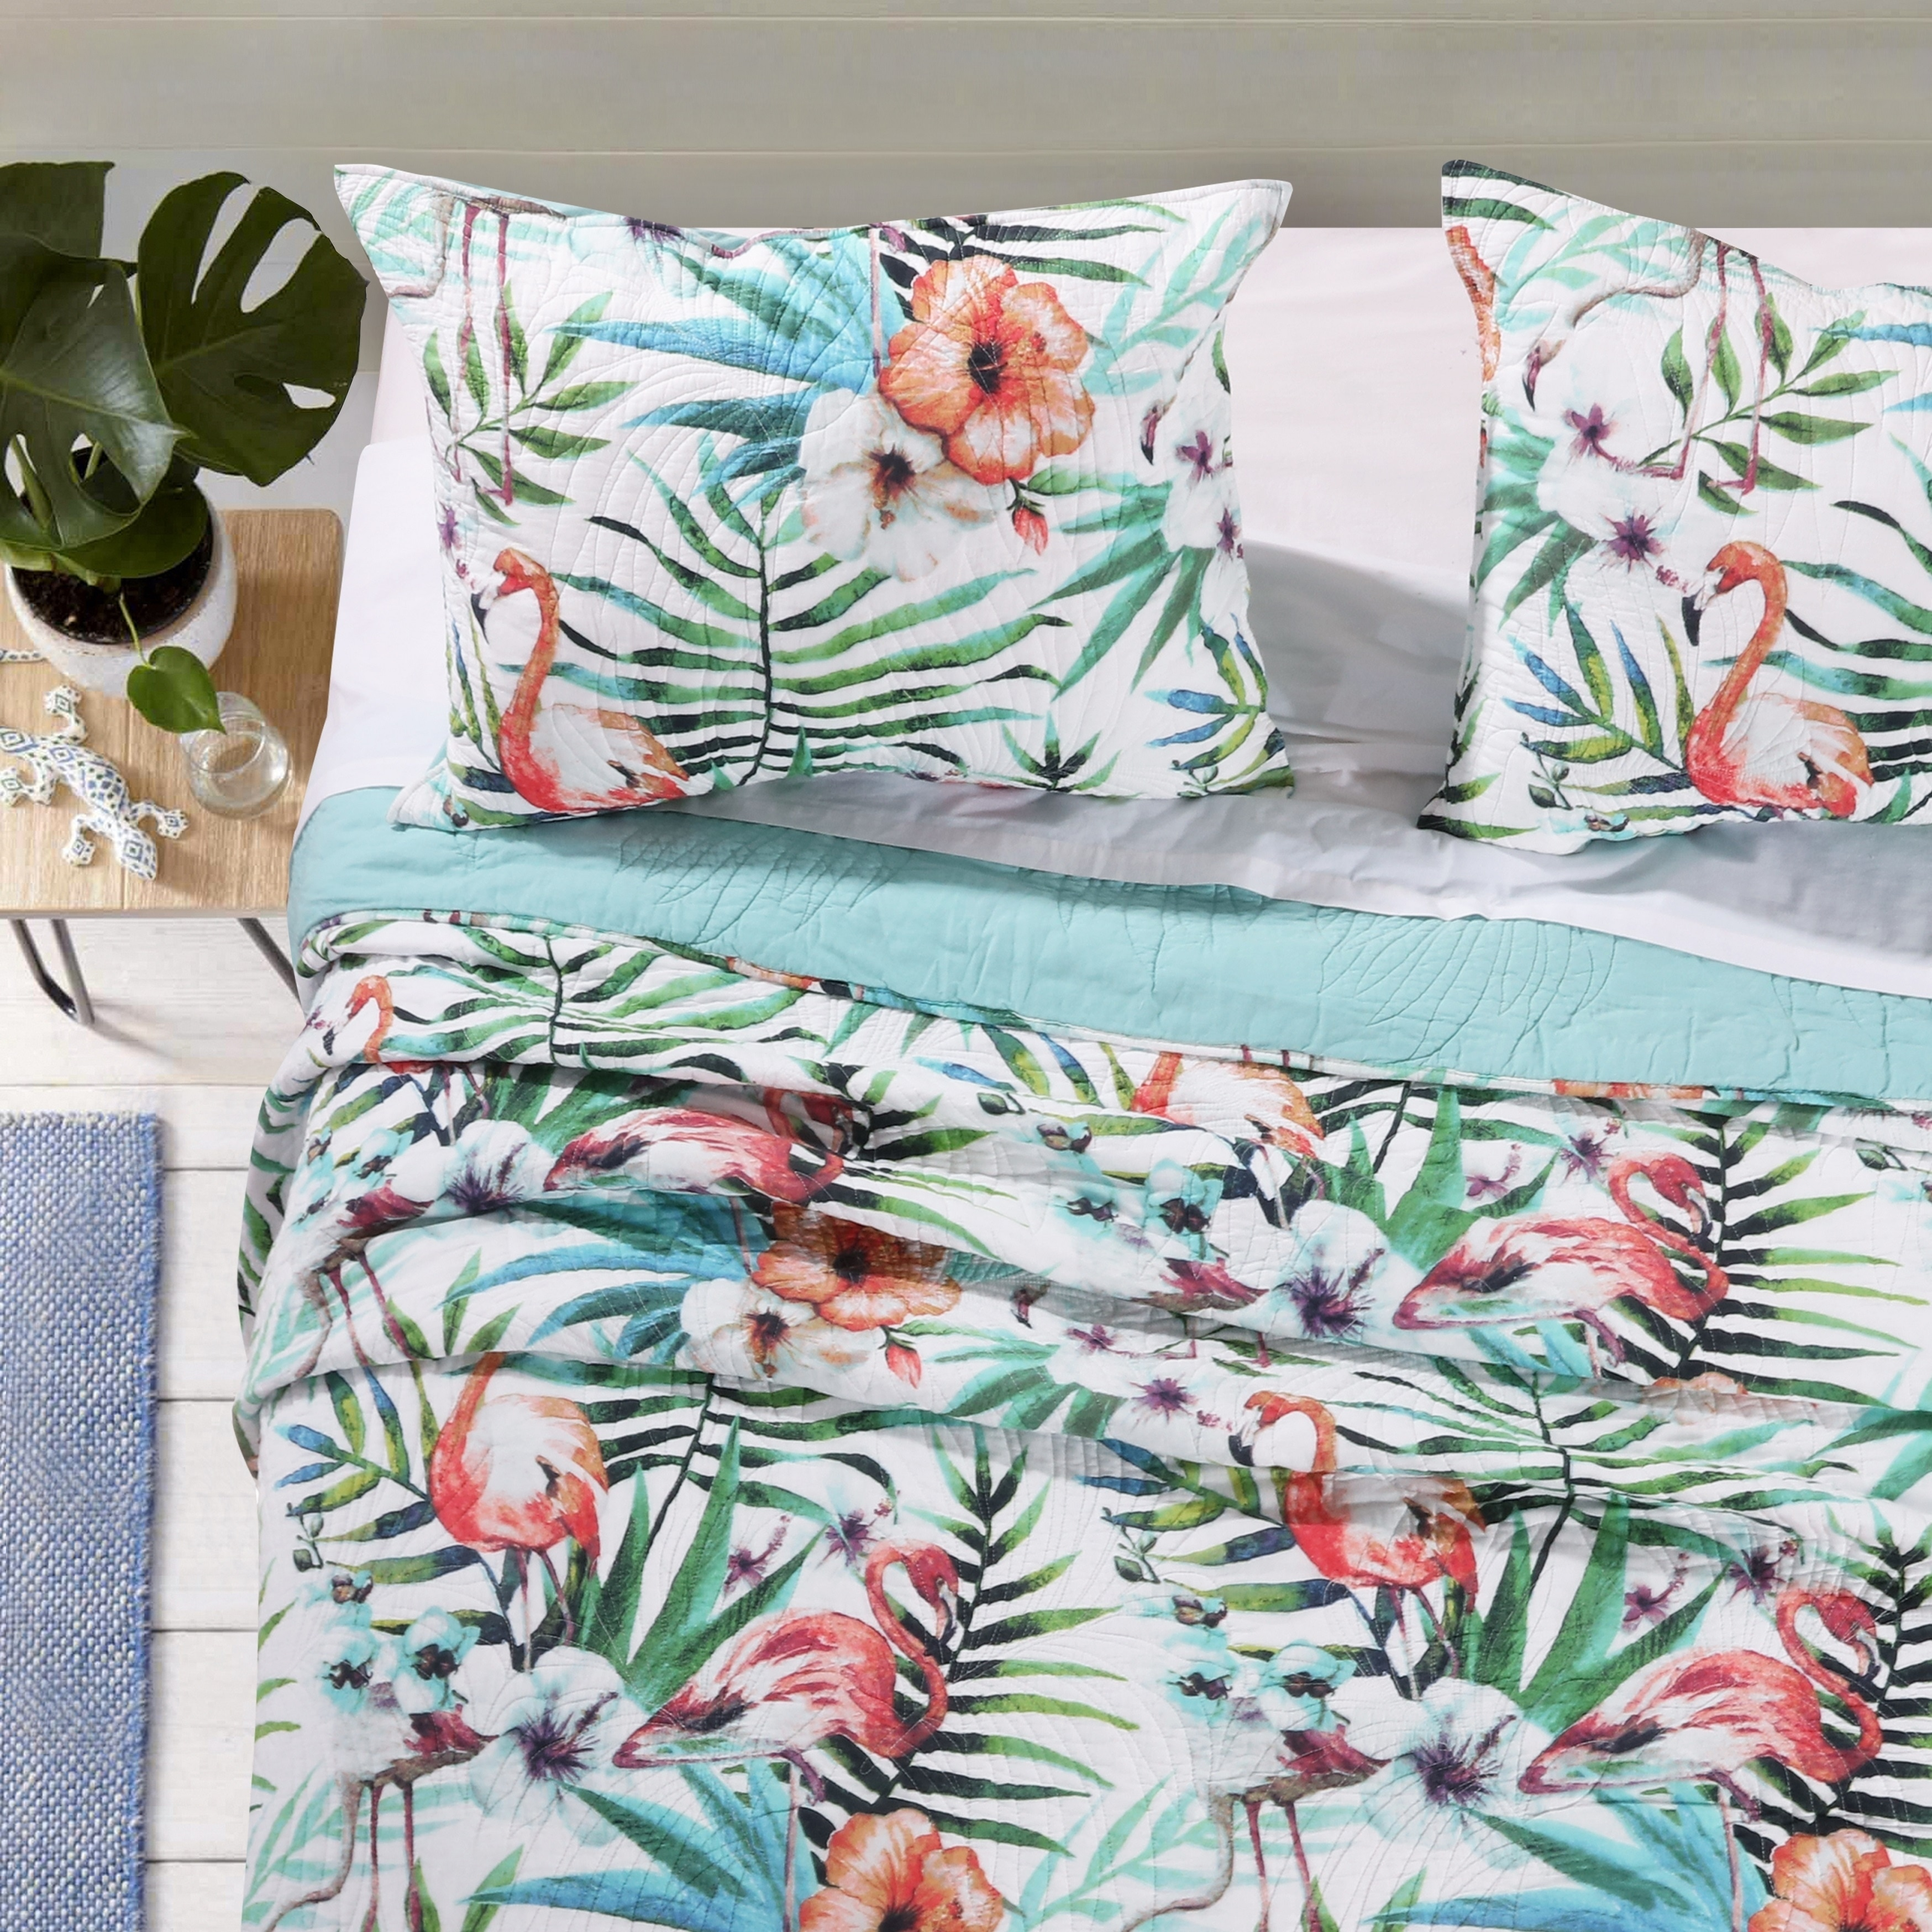 Flamingo Quilted Bedspread /& Pillow Shams Set Lovers Kissing Artful Print